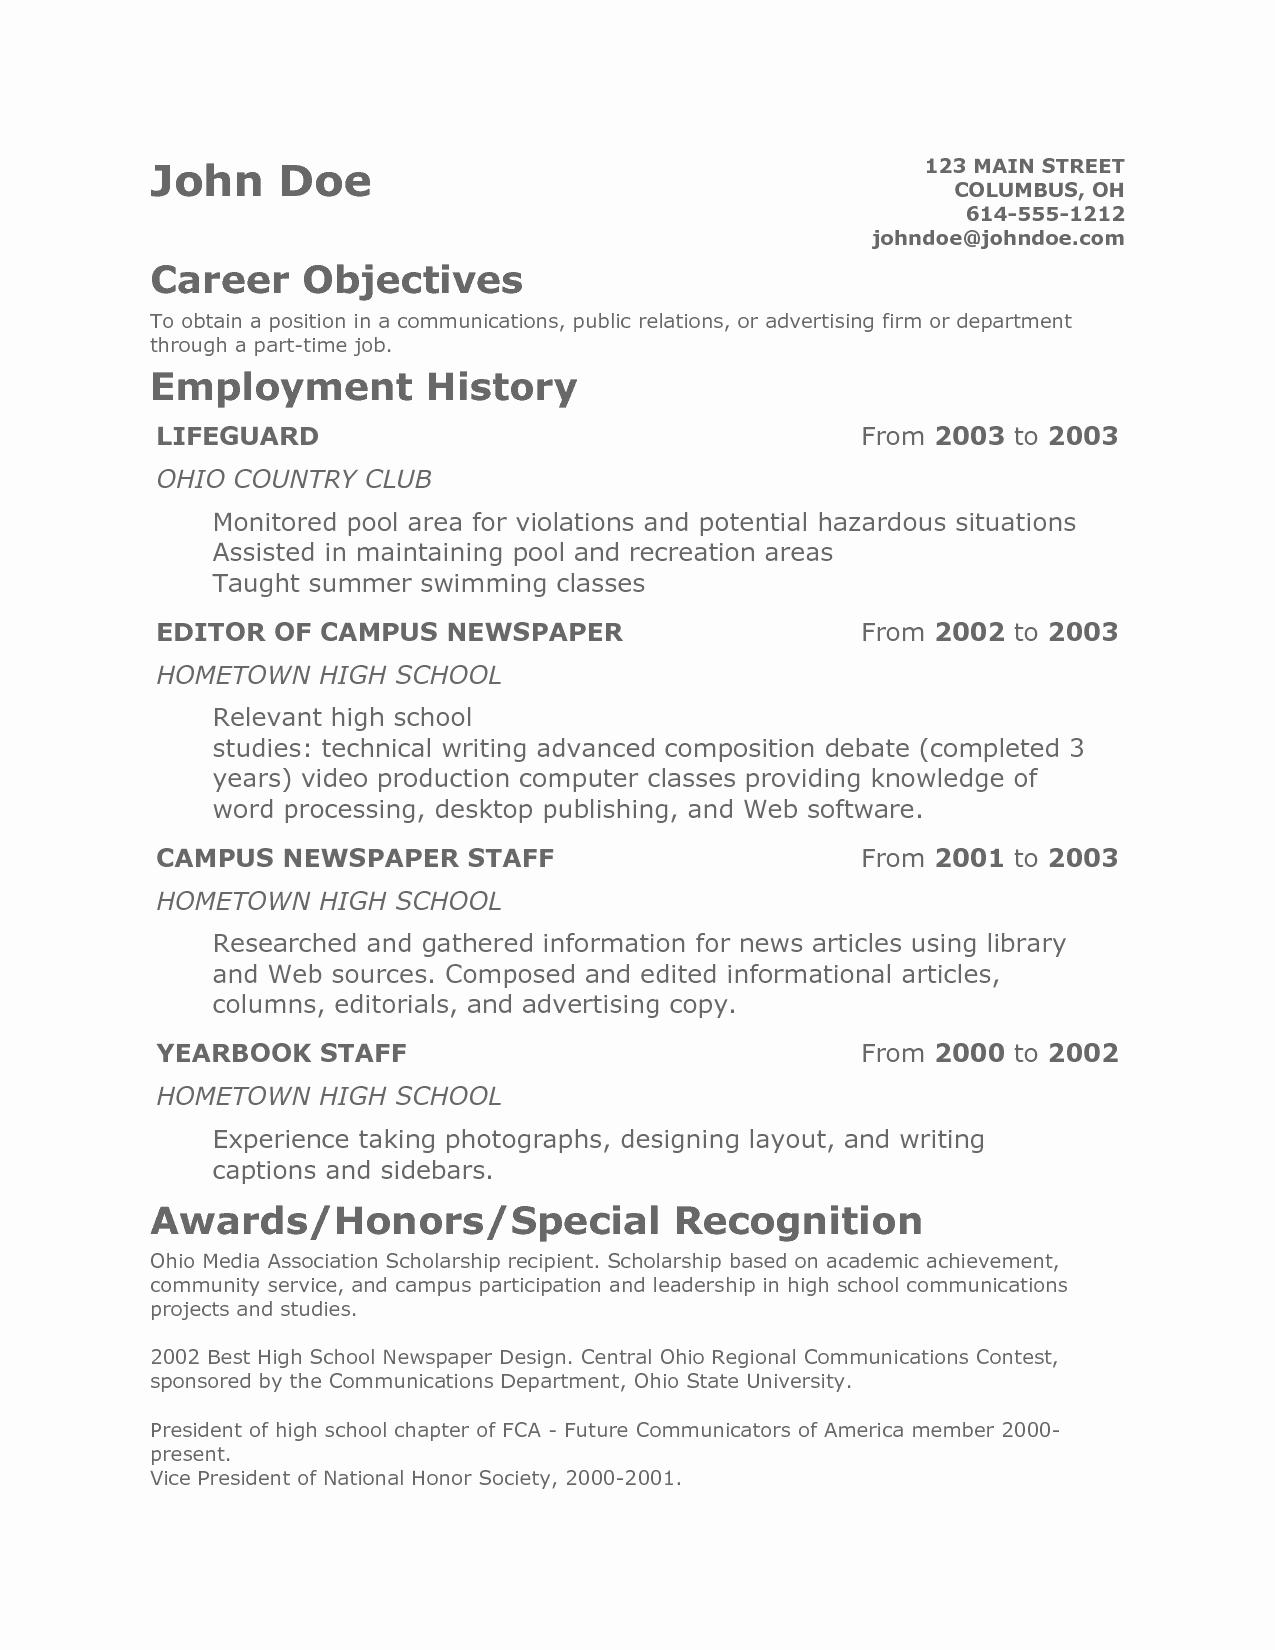 Free Resume Templates For Teens Of Teenager Resume